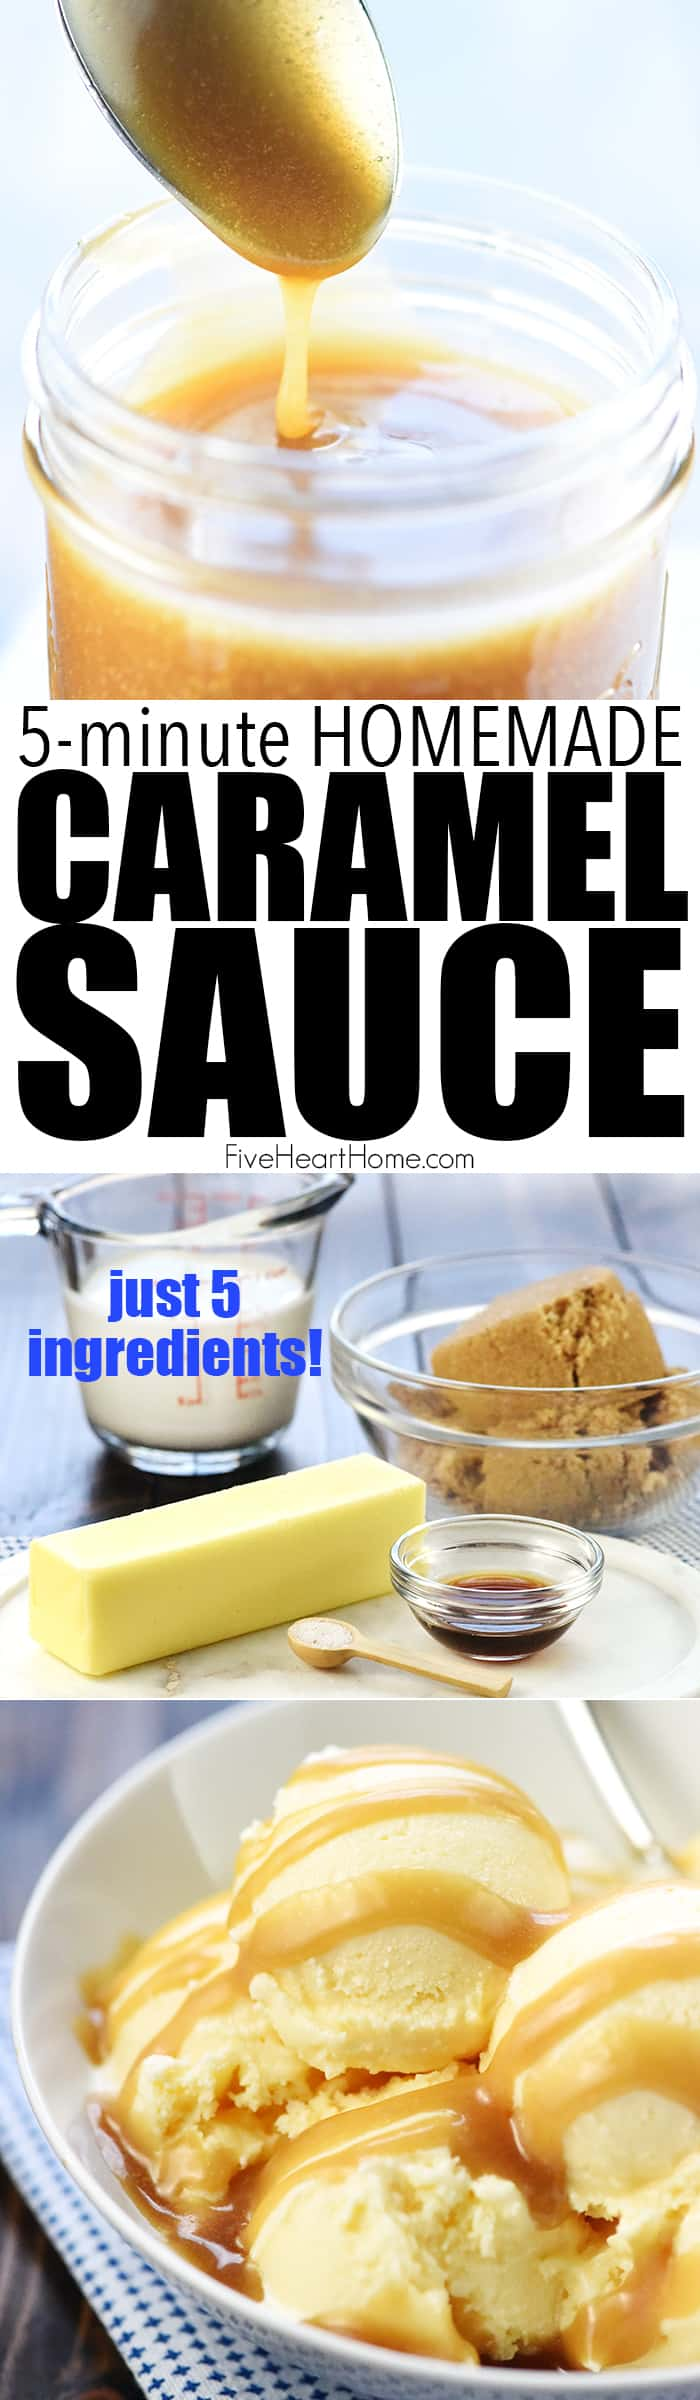 Easy Homemade Caramel Sauce ~ this is the BEST caramel sauce recipe...thick, gooey, and made with just FIVE ingredients in only FIVE minutes! It makes a perfect caramel dip for apples, it's delicious drizzled over brownies or ice cream, and it's even great as a homemade food gift! | FiveHeartHome.com via @fivehearthome